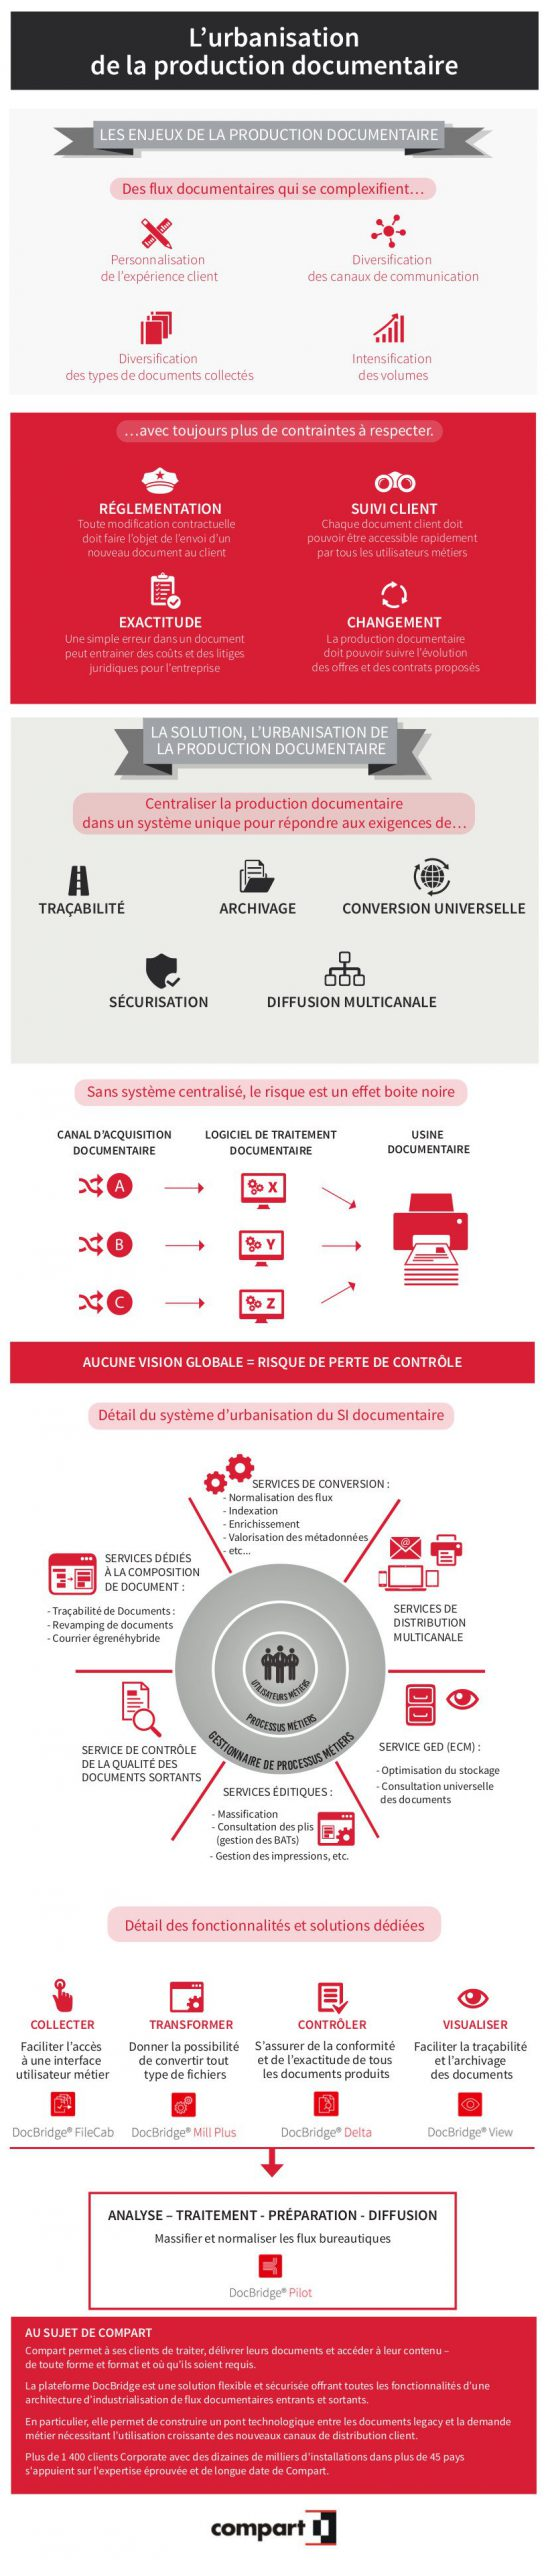 Infographie_Urbanisation-Production-documentaire-Compart